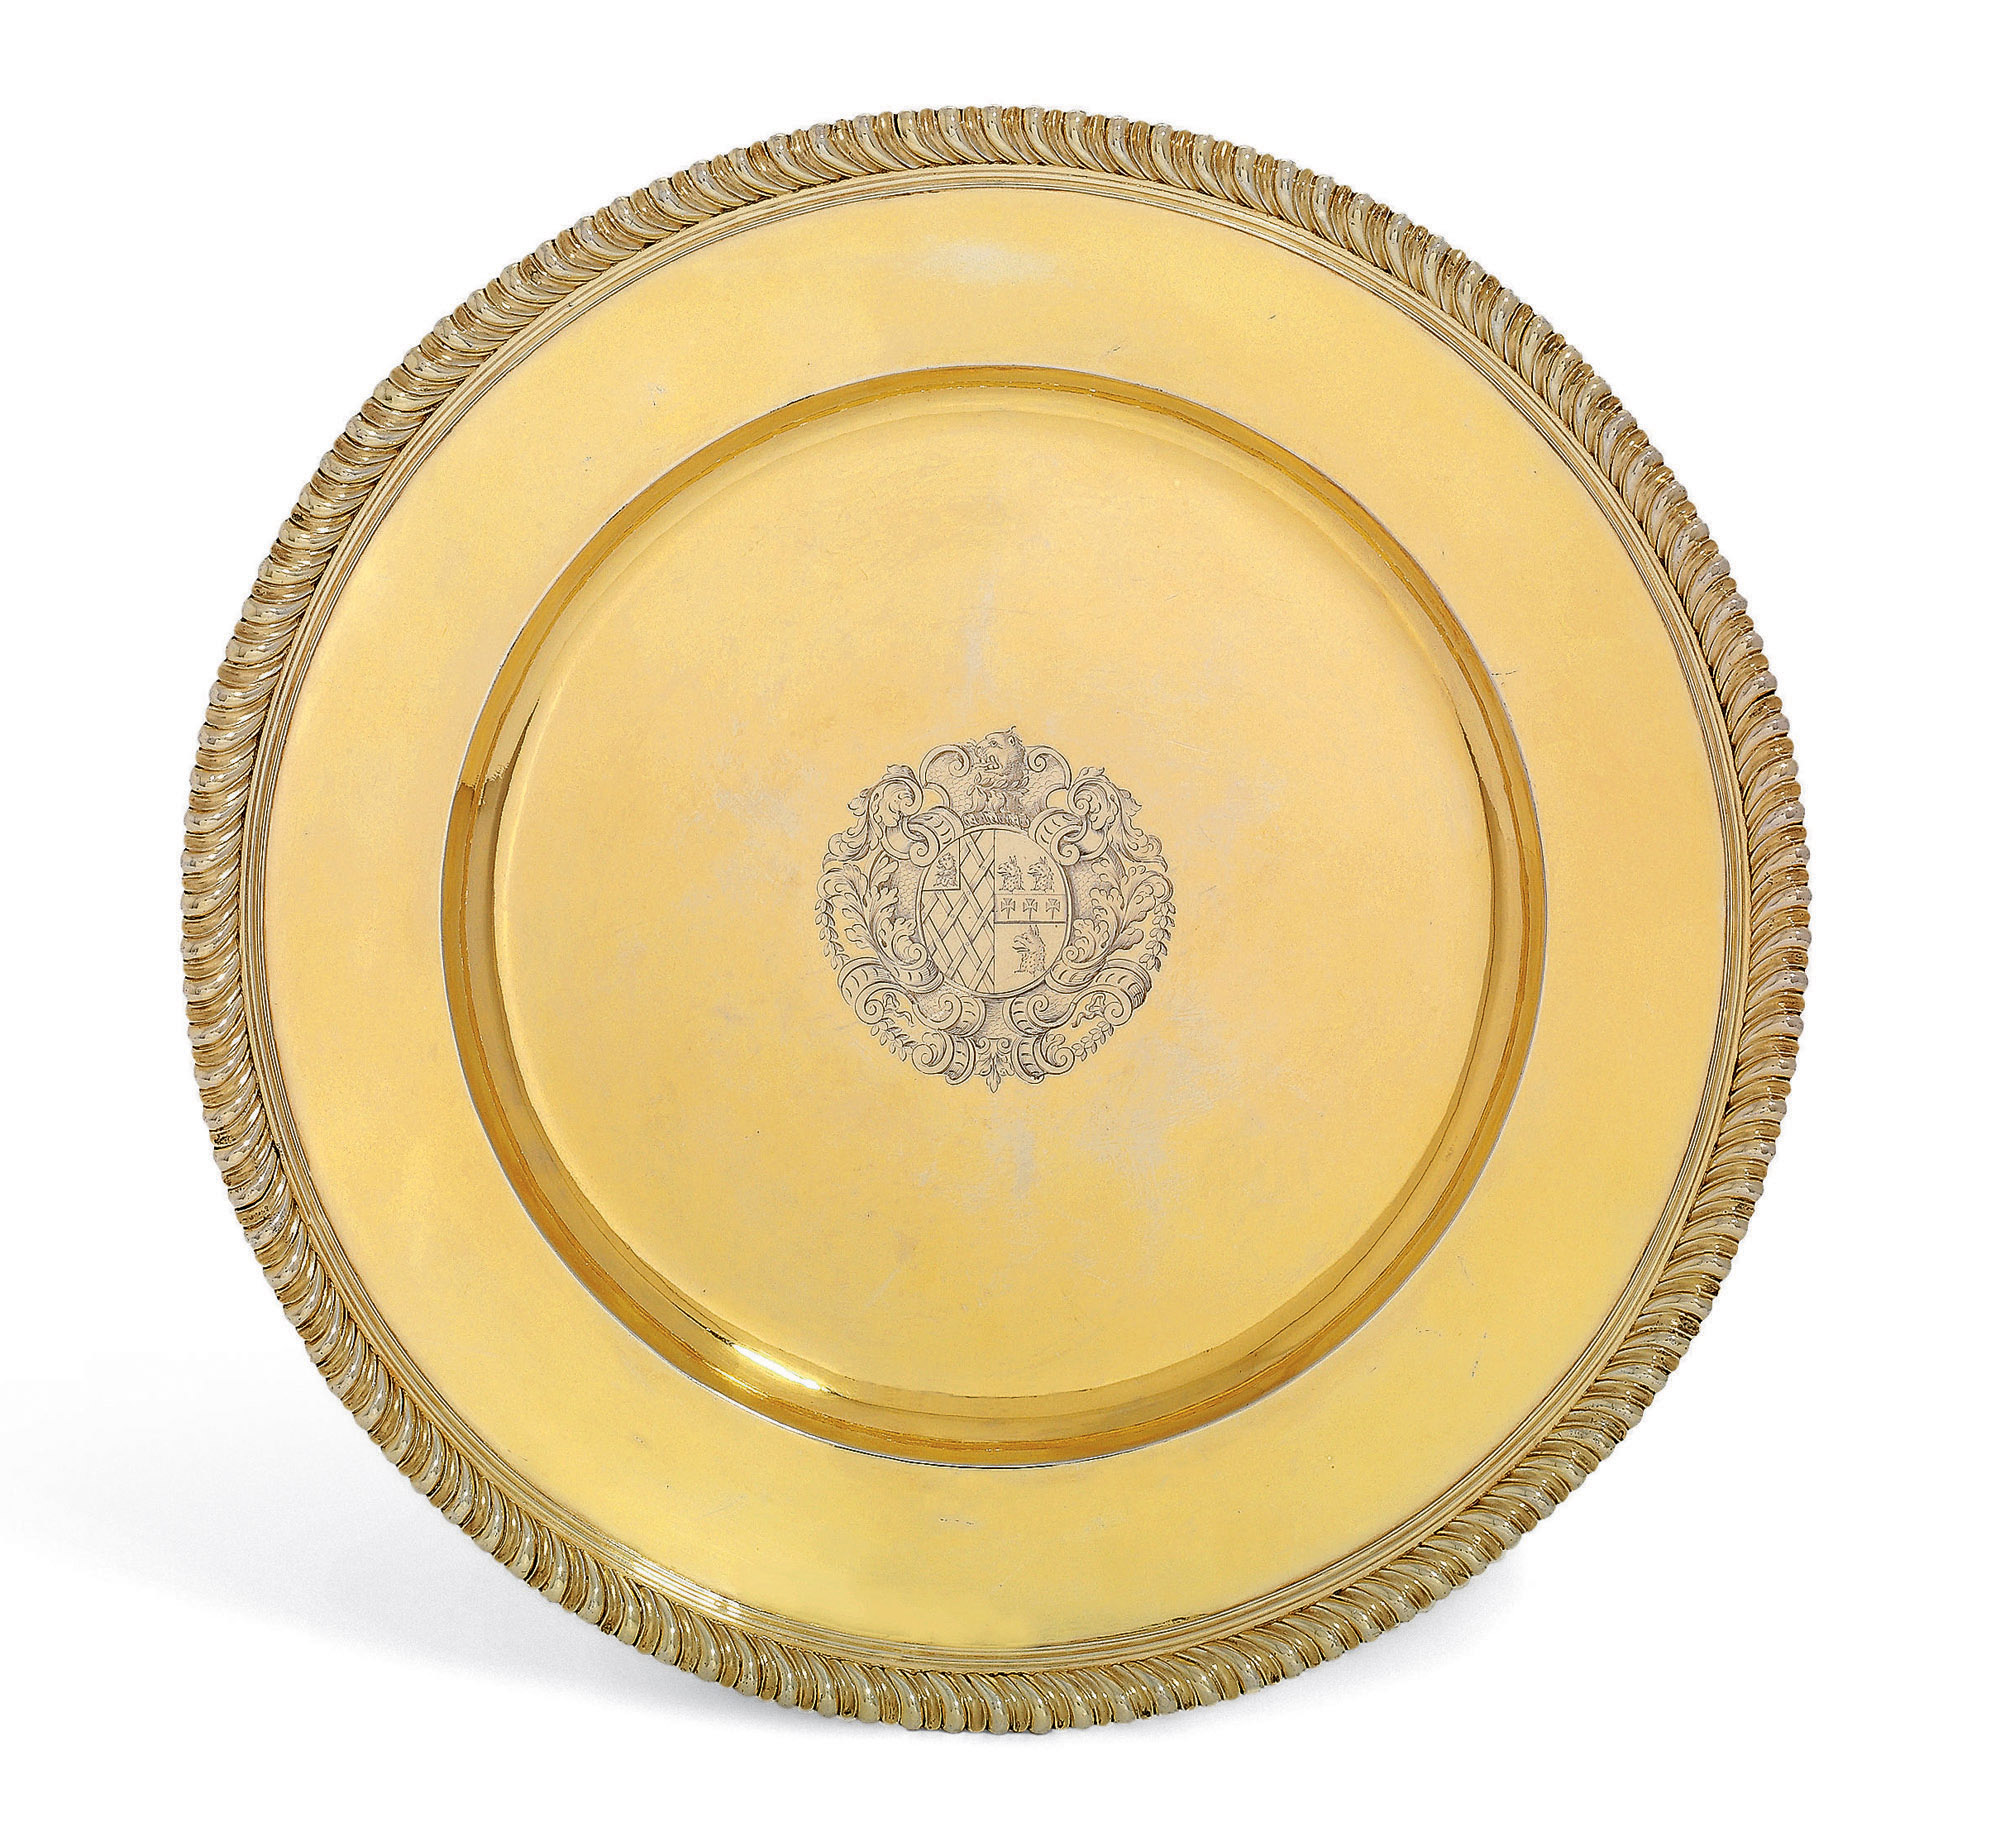 AN IMPORTANT WILLIAM III SILVER-GILT SIDEBOARD-DISH